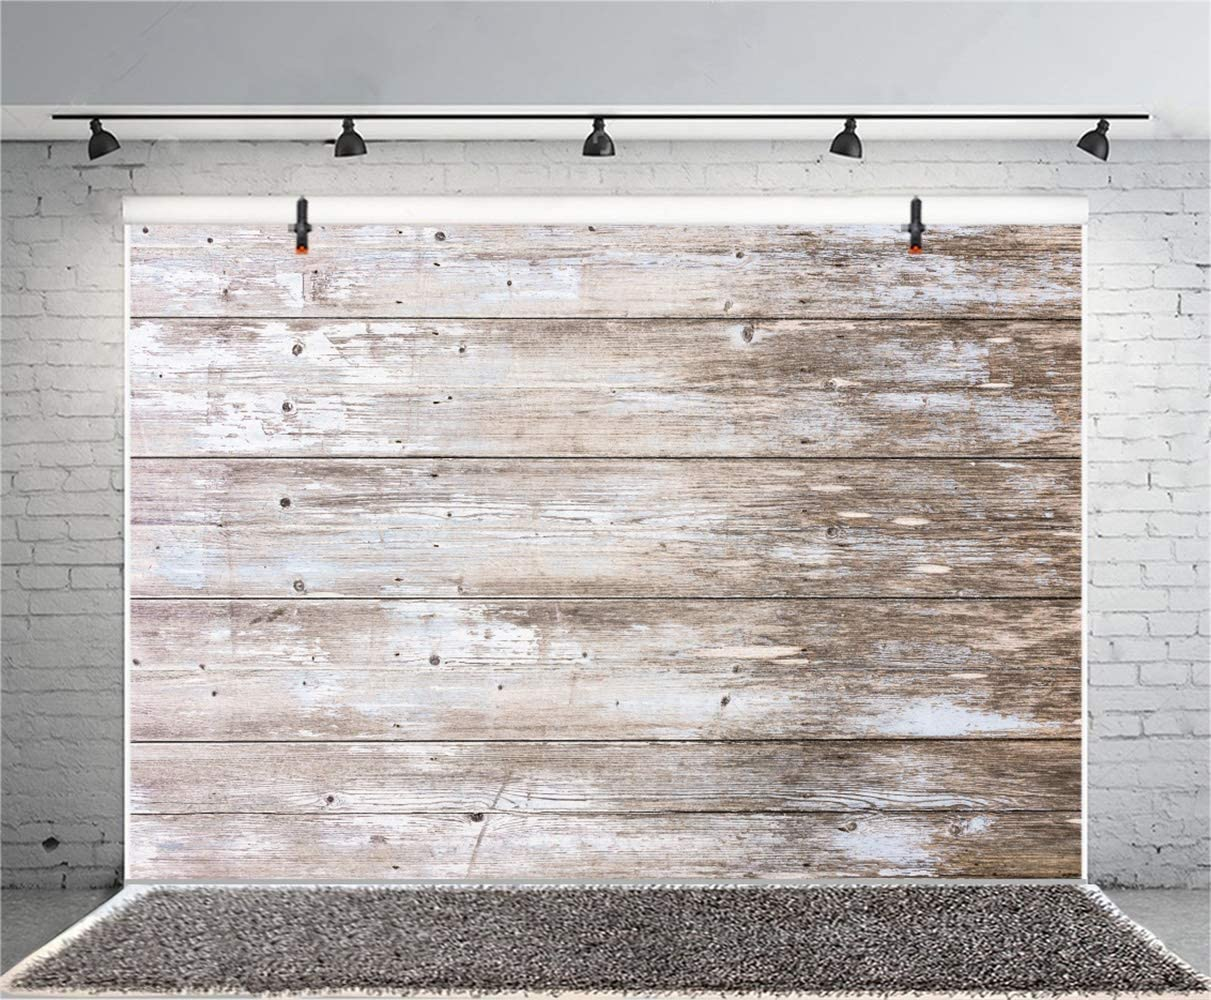 Polyester 10x6.5ft Grunge Faded Lateral-Cut Wood Plank Photography Background Rustic Wooden Board Backdrop Children Adult Pets Artistic Portrait Shoot Countryside Earthy